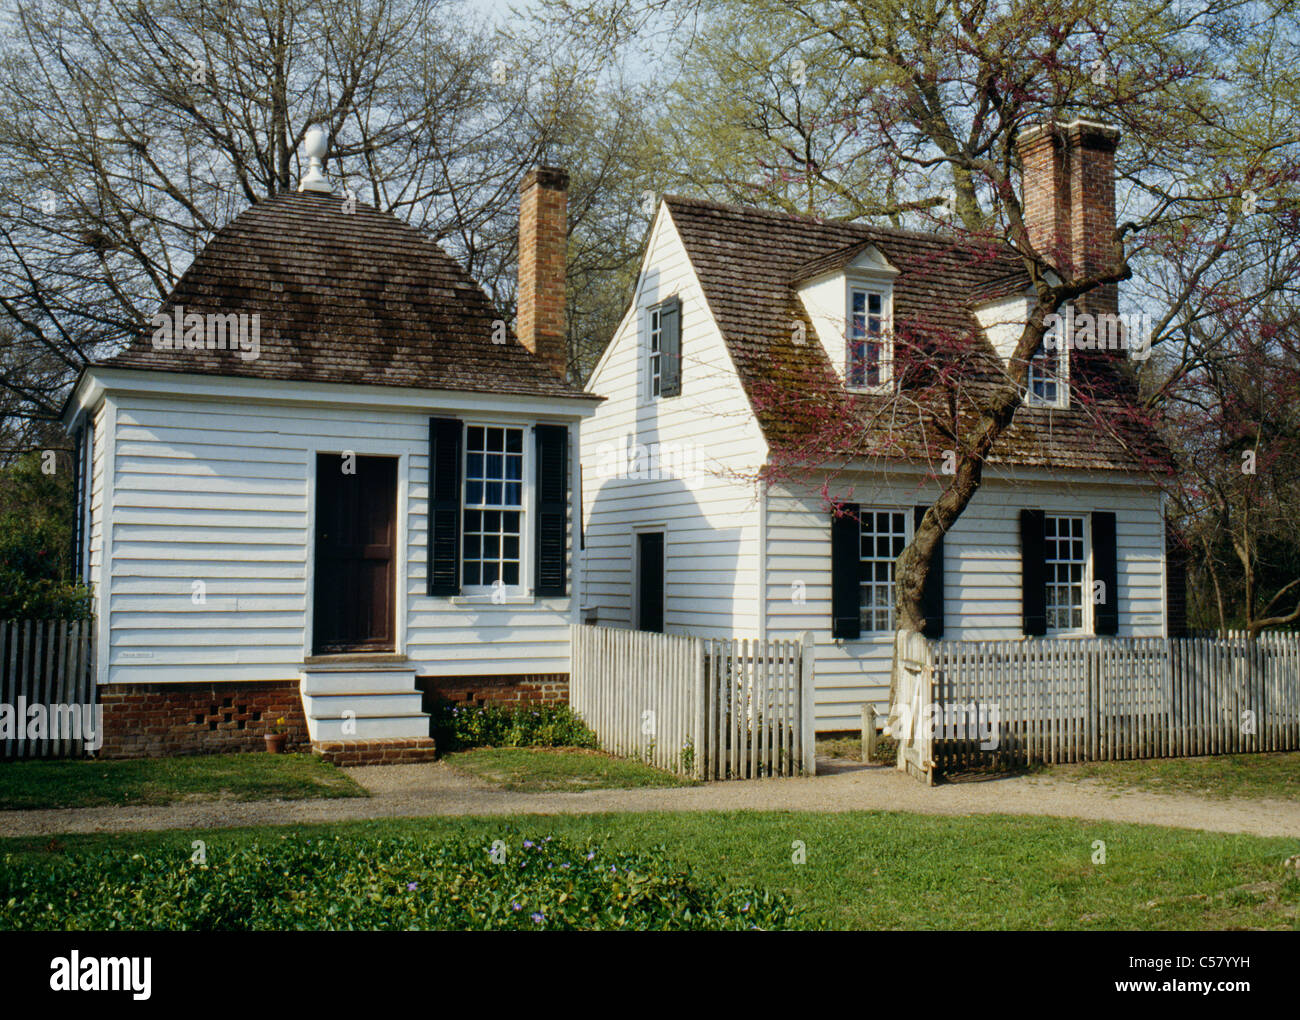 Small Cape Cod style house with end chimney Williamsburg Virginia